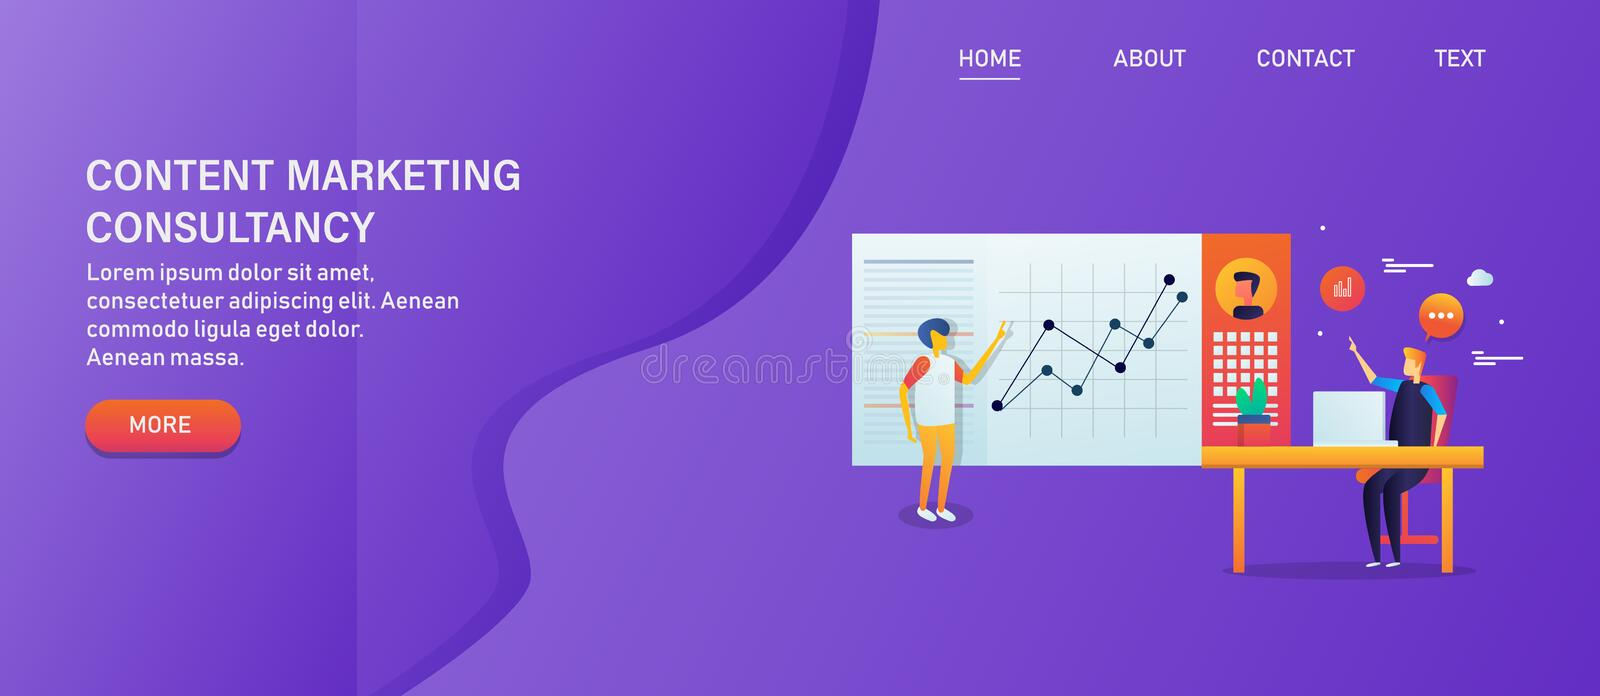 Content marketing, digital marketing agency, online content promotion consultancy, media advertising company concept. stock illustration